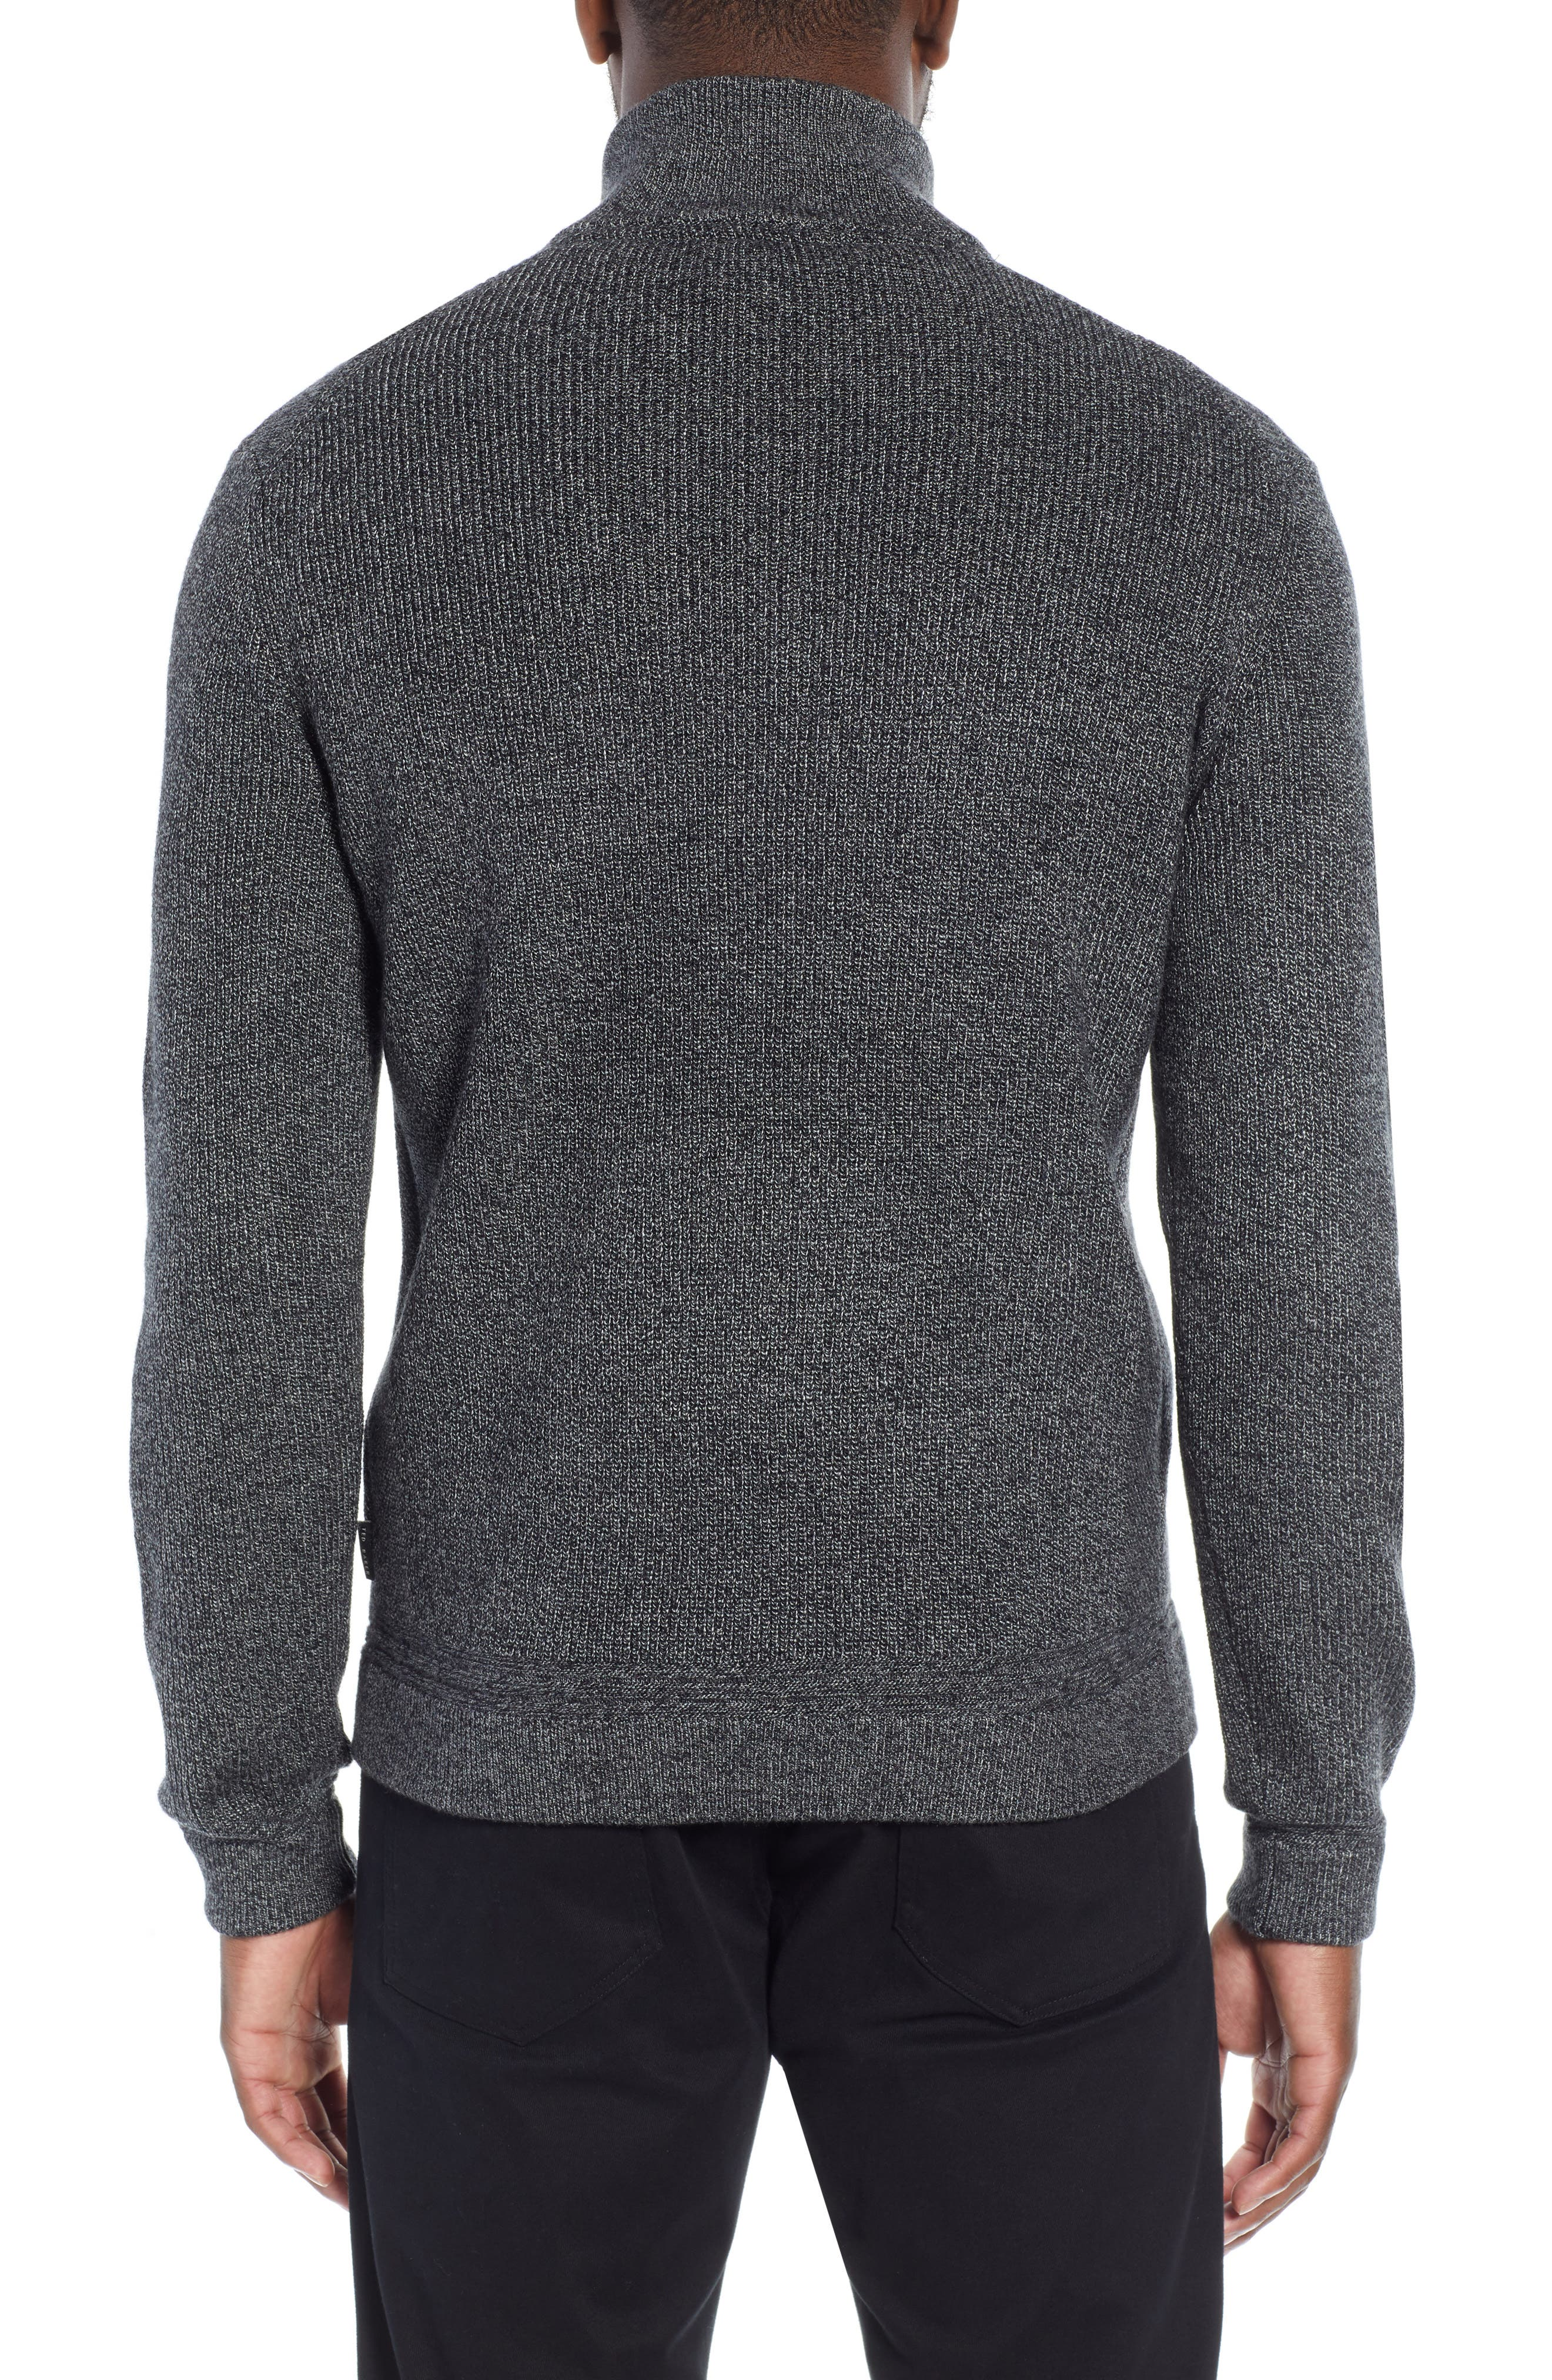 Lohas Slim Fit Funnel Neck Sweater,                             Alternate thumbnail 2, color,                             CHARCOAL